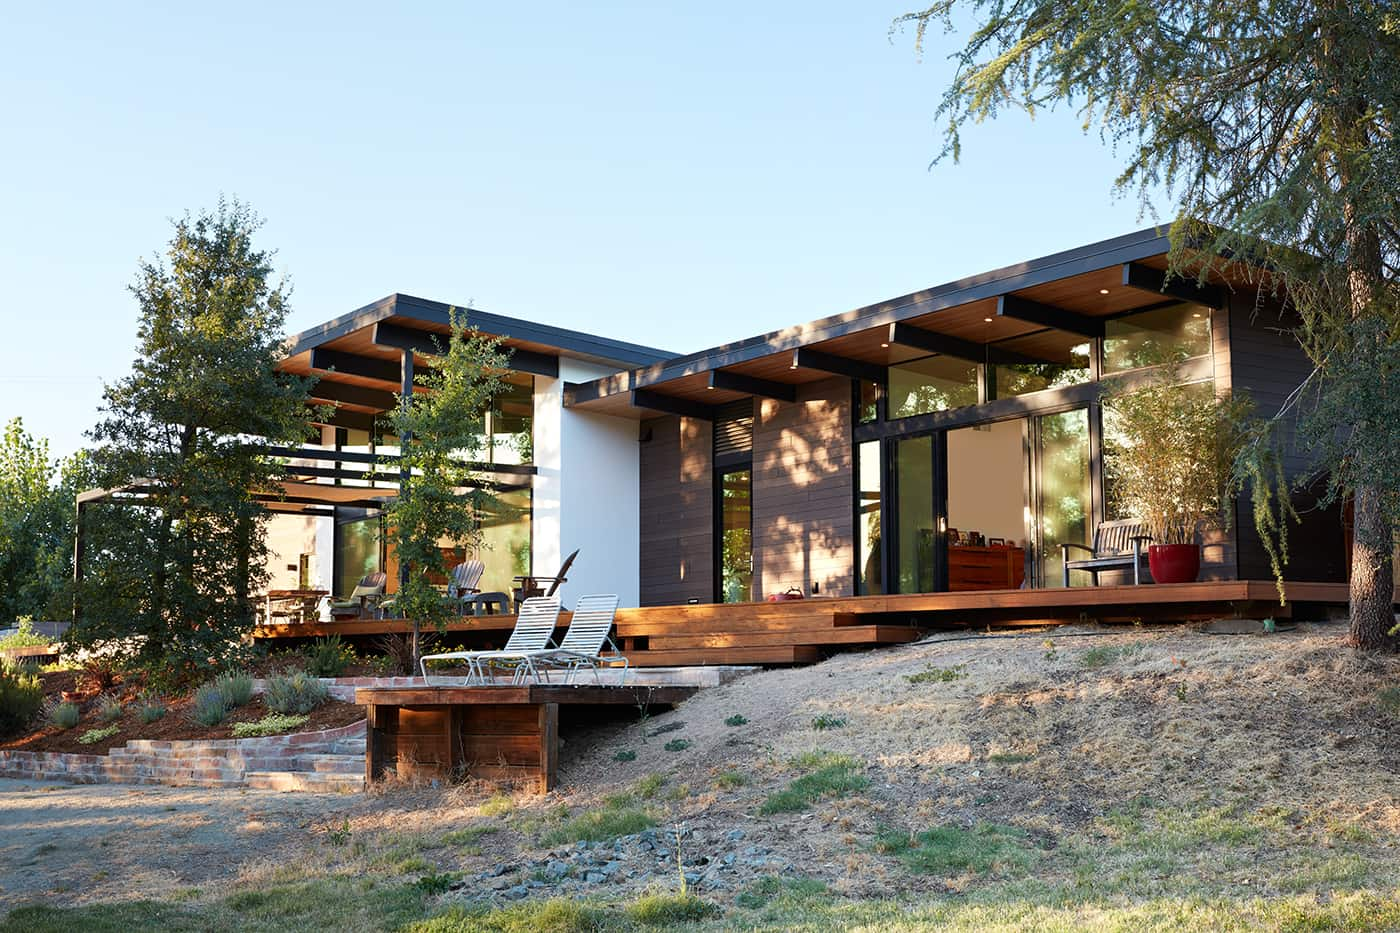 mid-century house renovation by Klopf architects in Sacramento - exterior